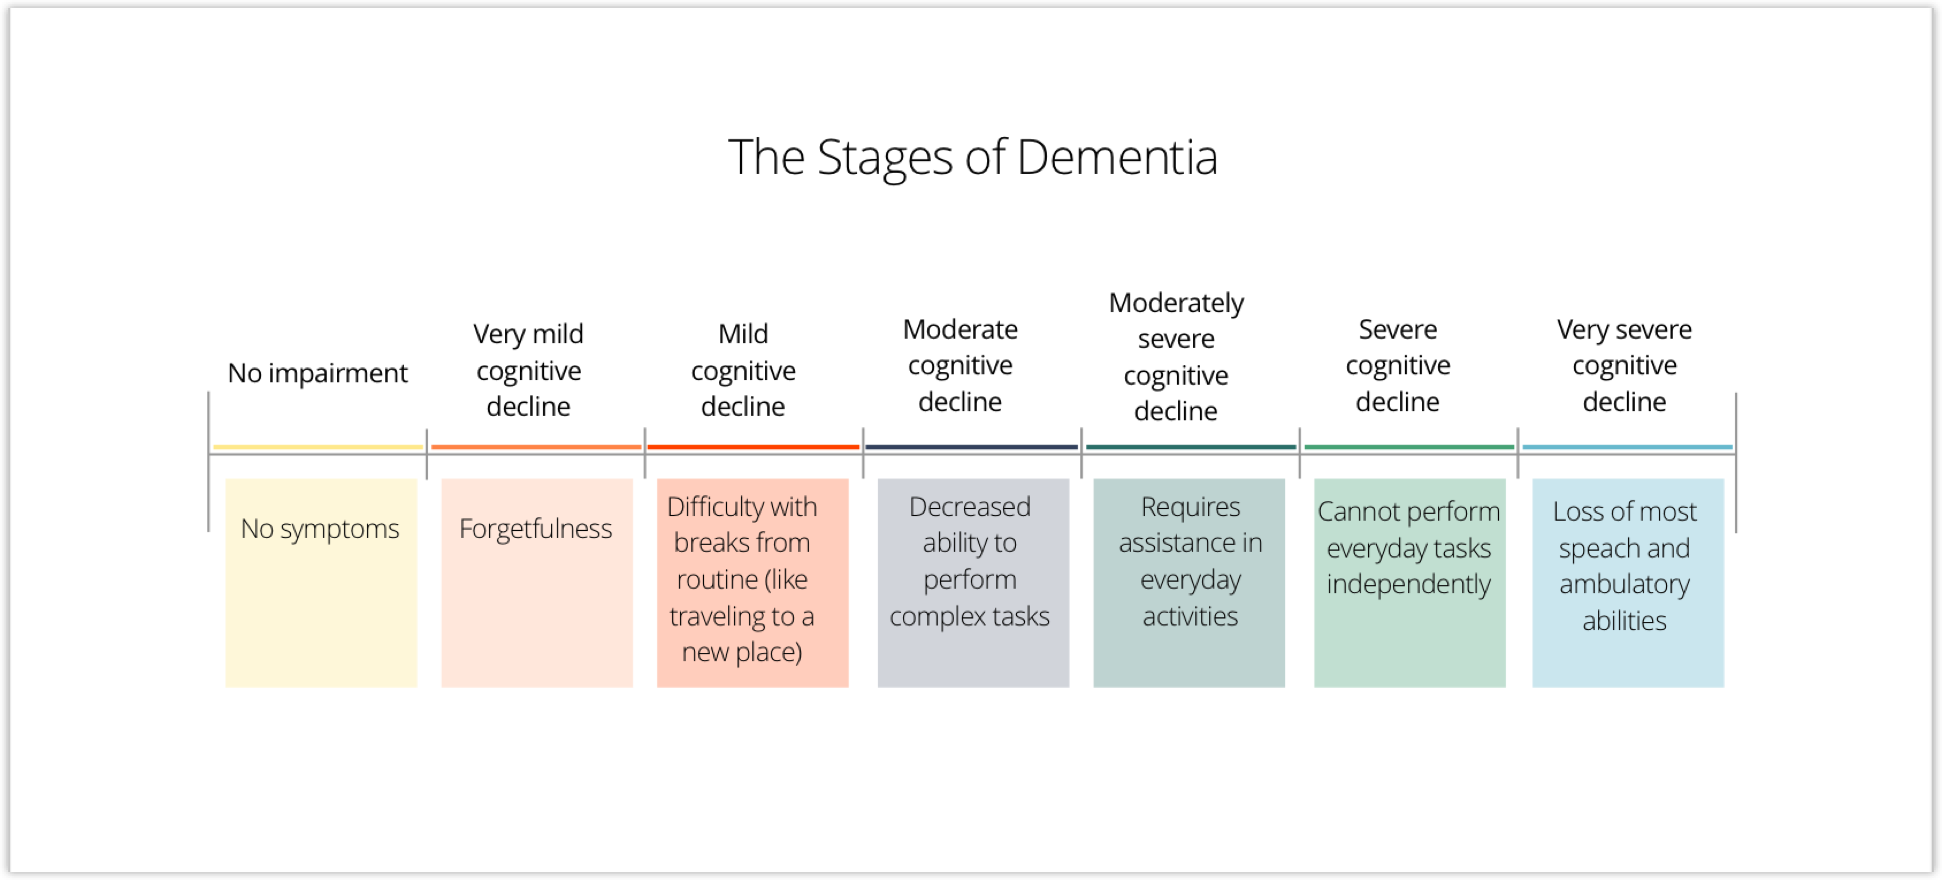 Our design is meant to assist dementia patients in the early stages of the disease who are still able to live independently or with minimal assistance.